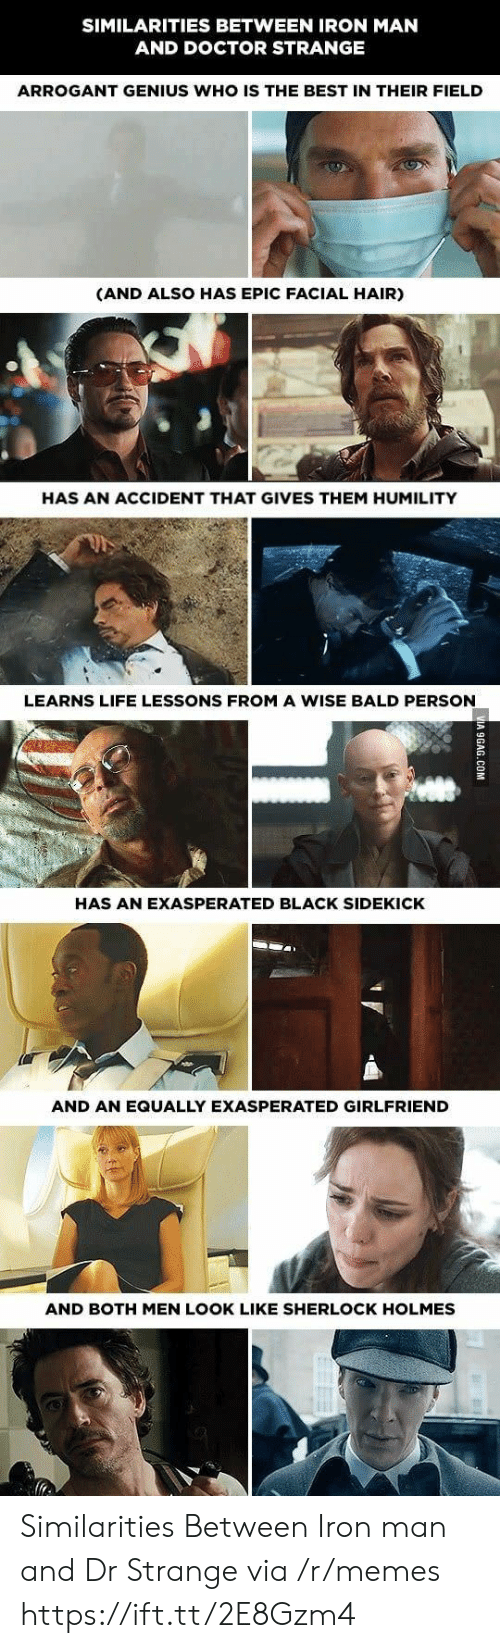 doctor strange: SIMILARITIES BETWEEN IRON MAN  AND DOCTOR STRANGE  ARROGANT GENIUS WHO IS THE BEST IN THEIR FIELD  (AND ALSO HAS EPIC FACIAL HAIR)  HAS AN ACCIDENT THAT GIVES THEM HUMILITY  LEARNS LIFE LESSONS FROM A WISE BALD PERSON  HAS AN EXASPERATED BLACK SIDEKICK  AND AN EQUALLY EXASPERATED GIRLFRIEND  AND BOTH MEN LOOK LIKE SHERLOCK HOLMES Similarities Between Iron man and Dr Strange via /r/memes https://ift.tt/2E8Gzm4